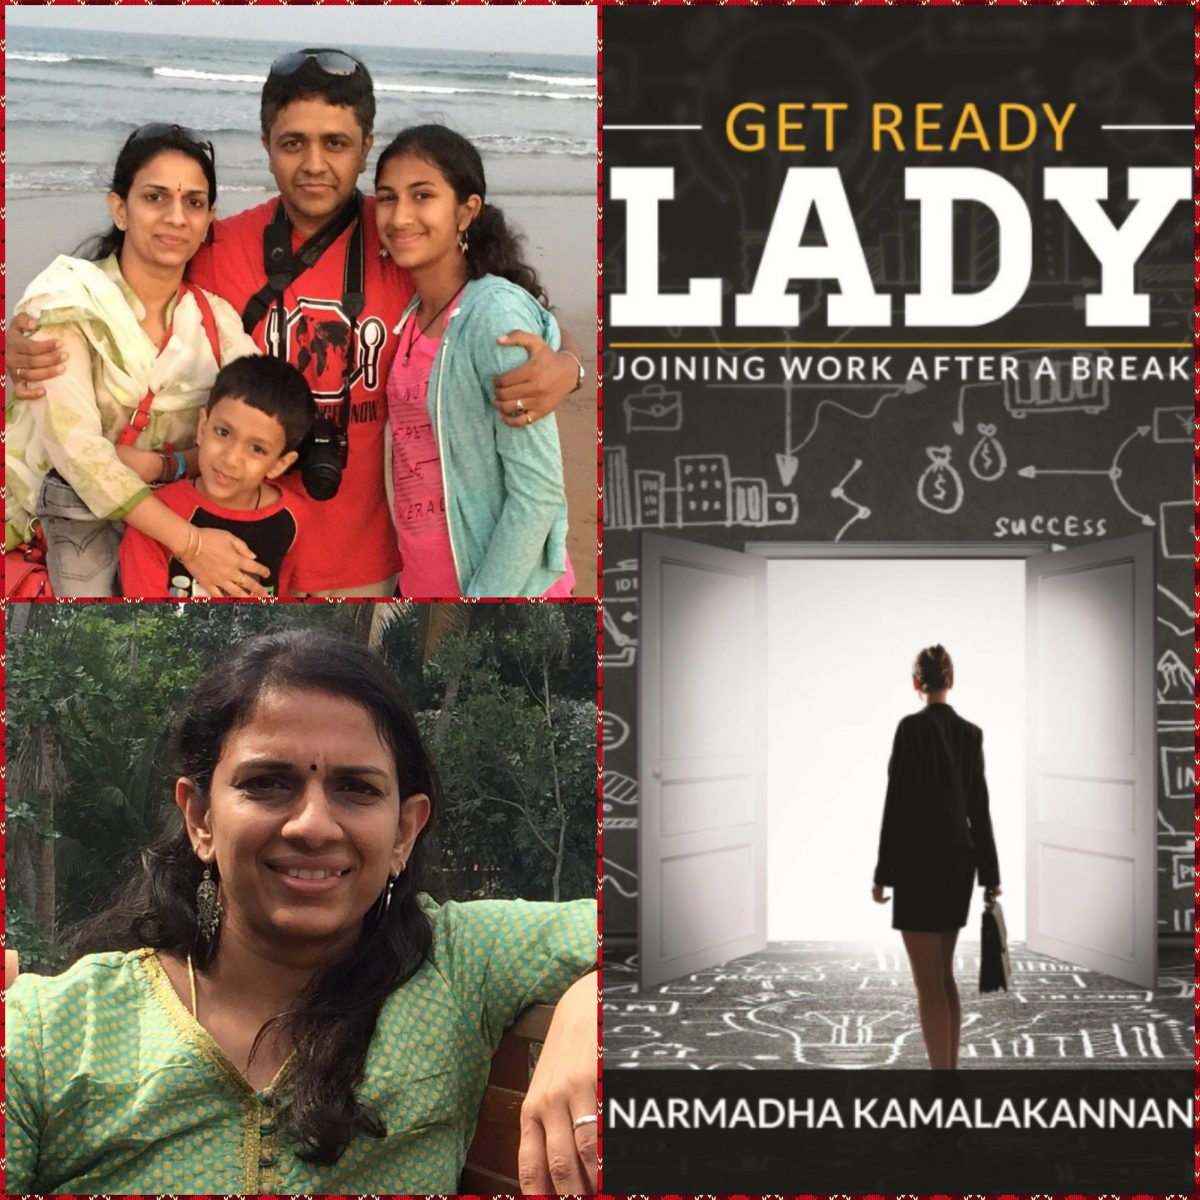 GET READY LADY Interview Series : Ravi talks about his 'Bold&Beautiful' Wife Sona – Director, Novak Professional Solutions